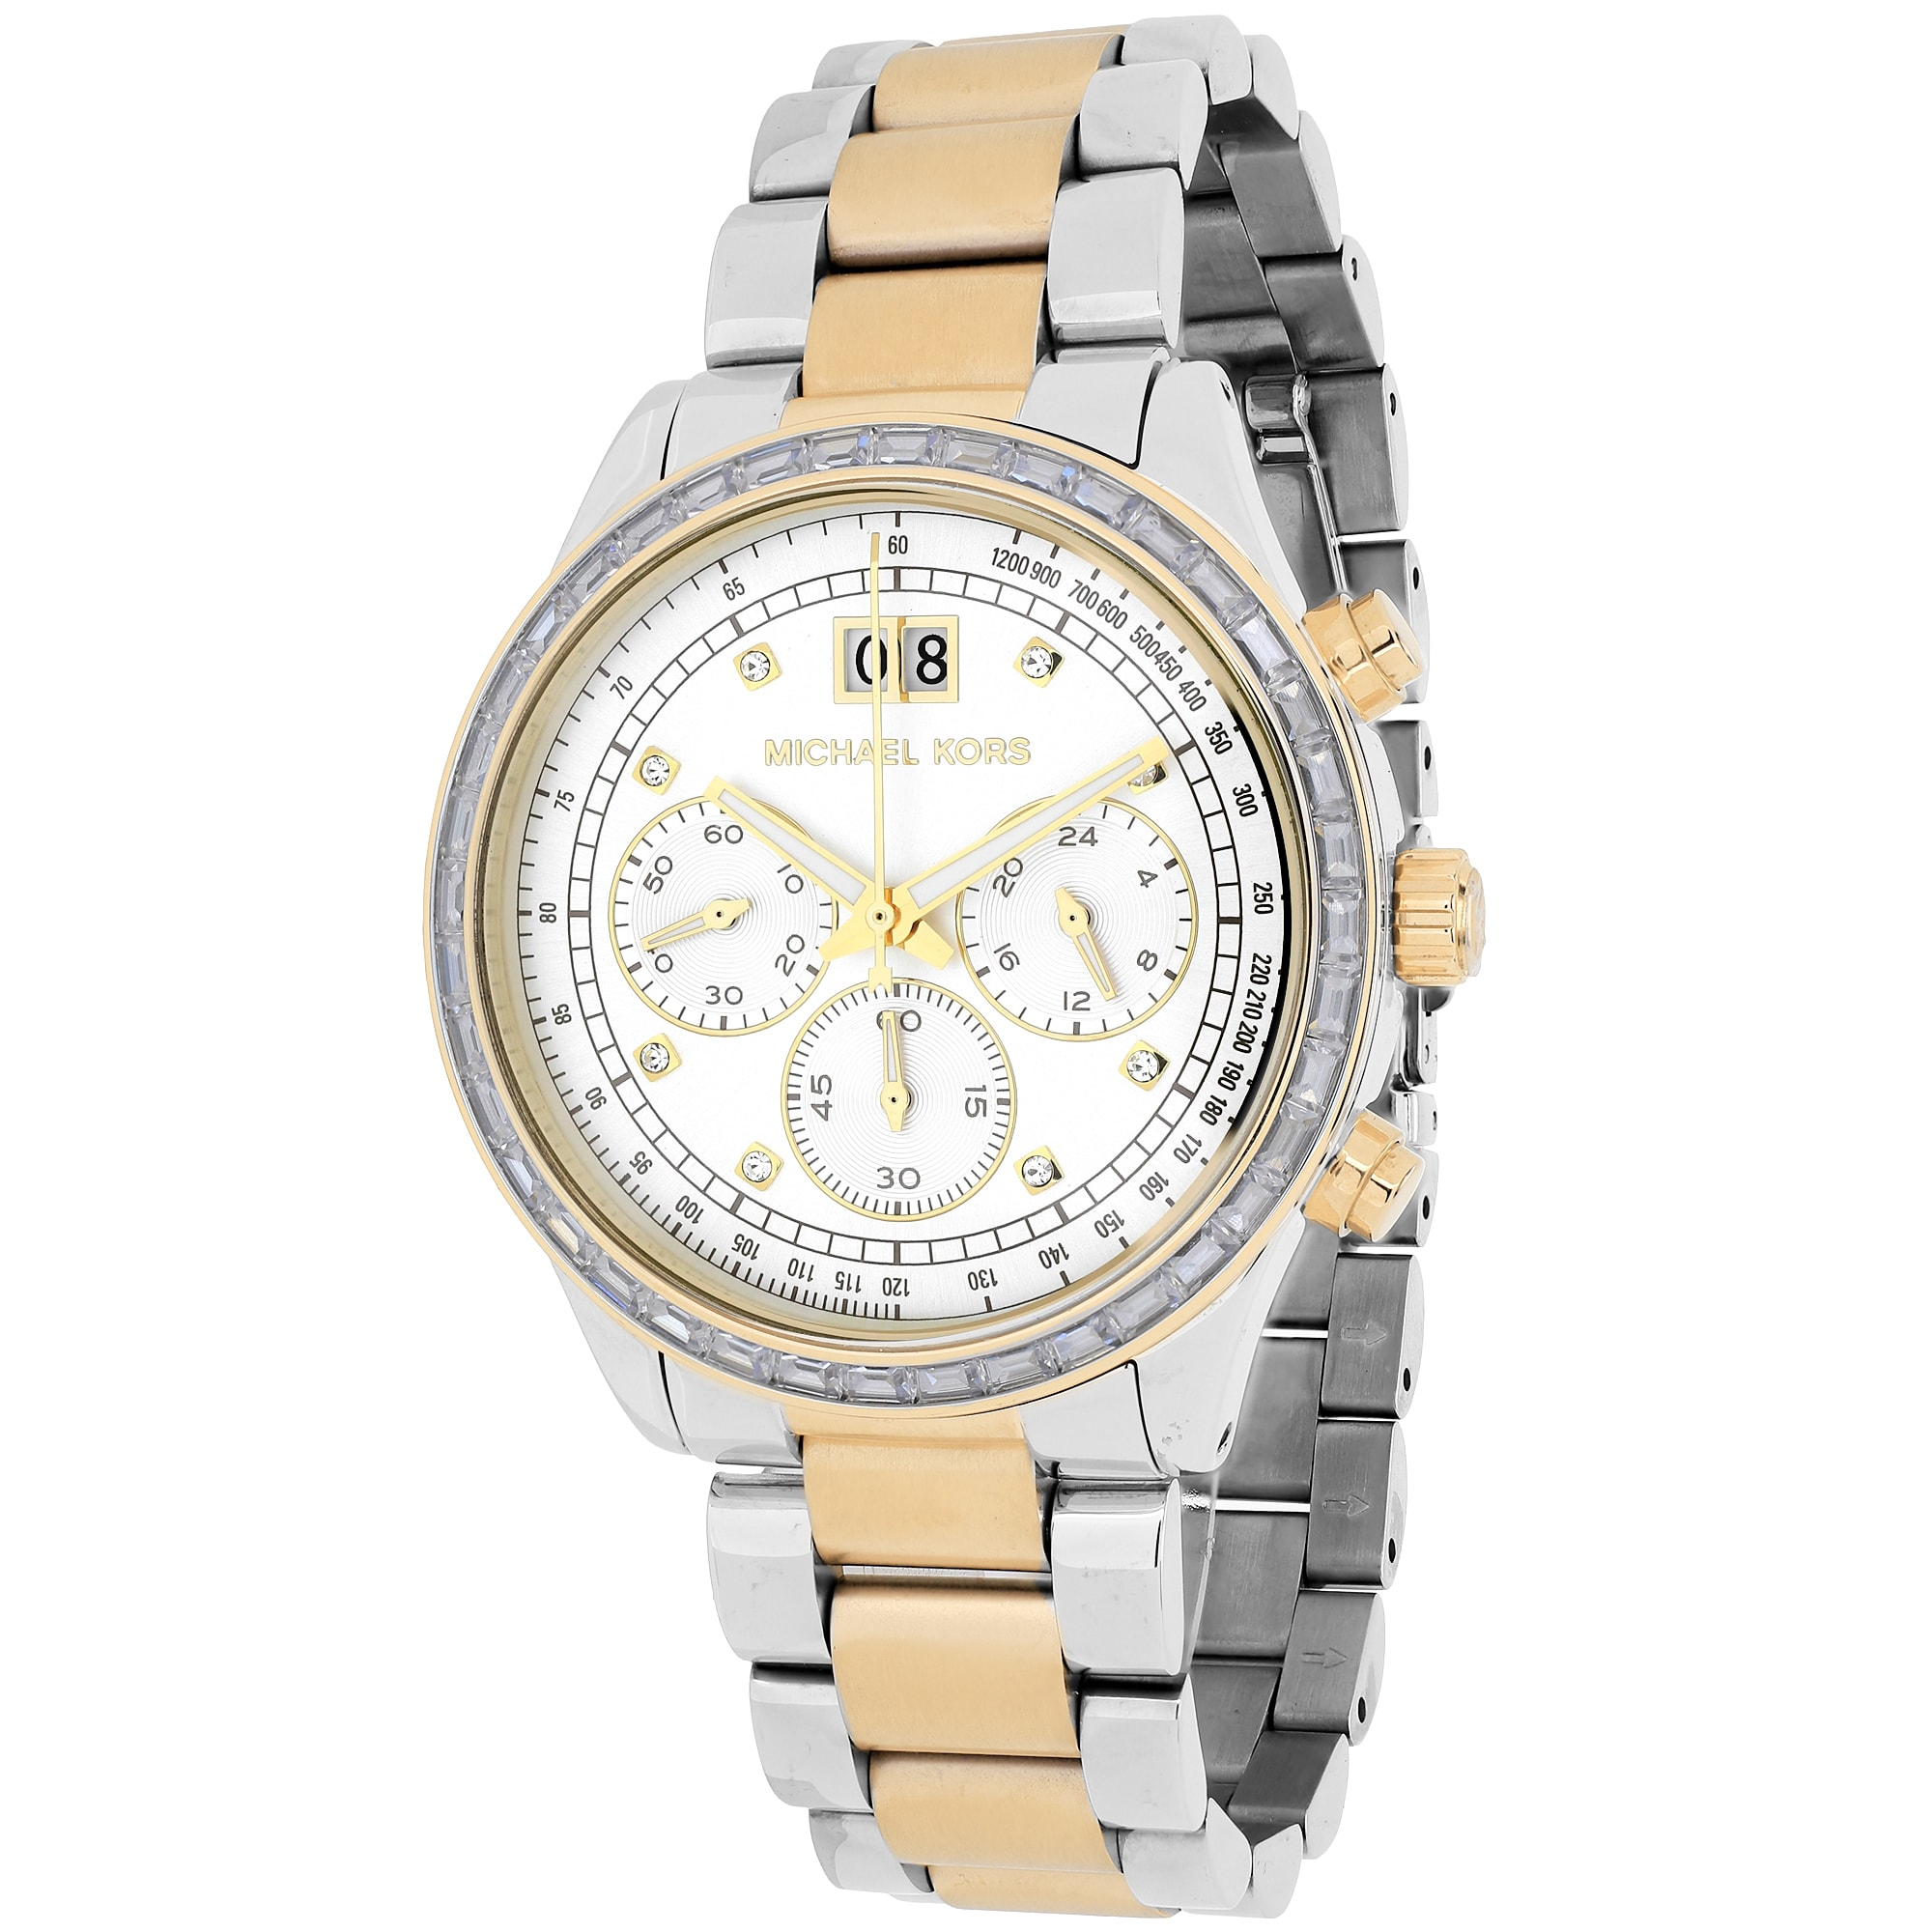 2bb7a6d8168e Shop Michael Kors Women s Brinkley Round Two-tone Bracelet Watch - Free  Shipping Today - Overstock - 10280418